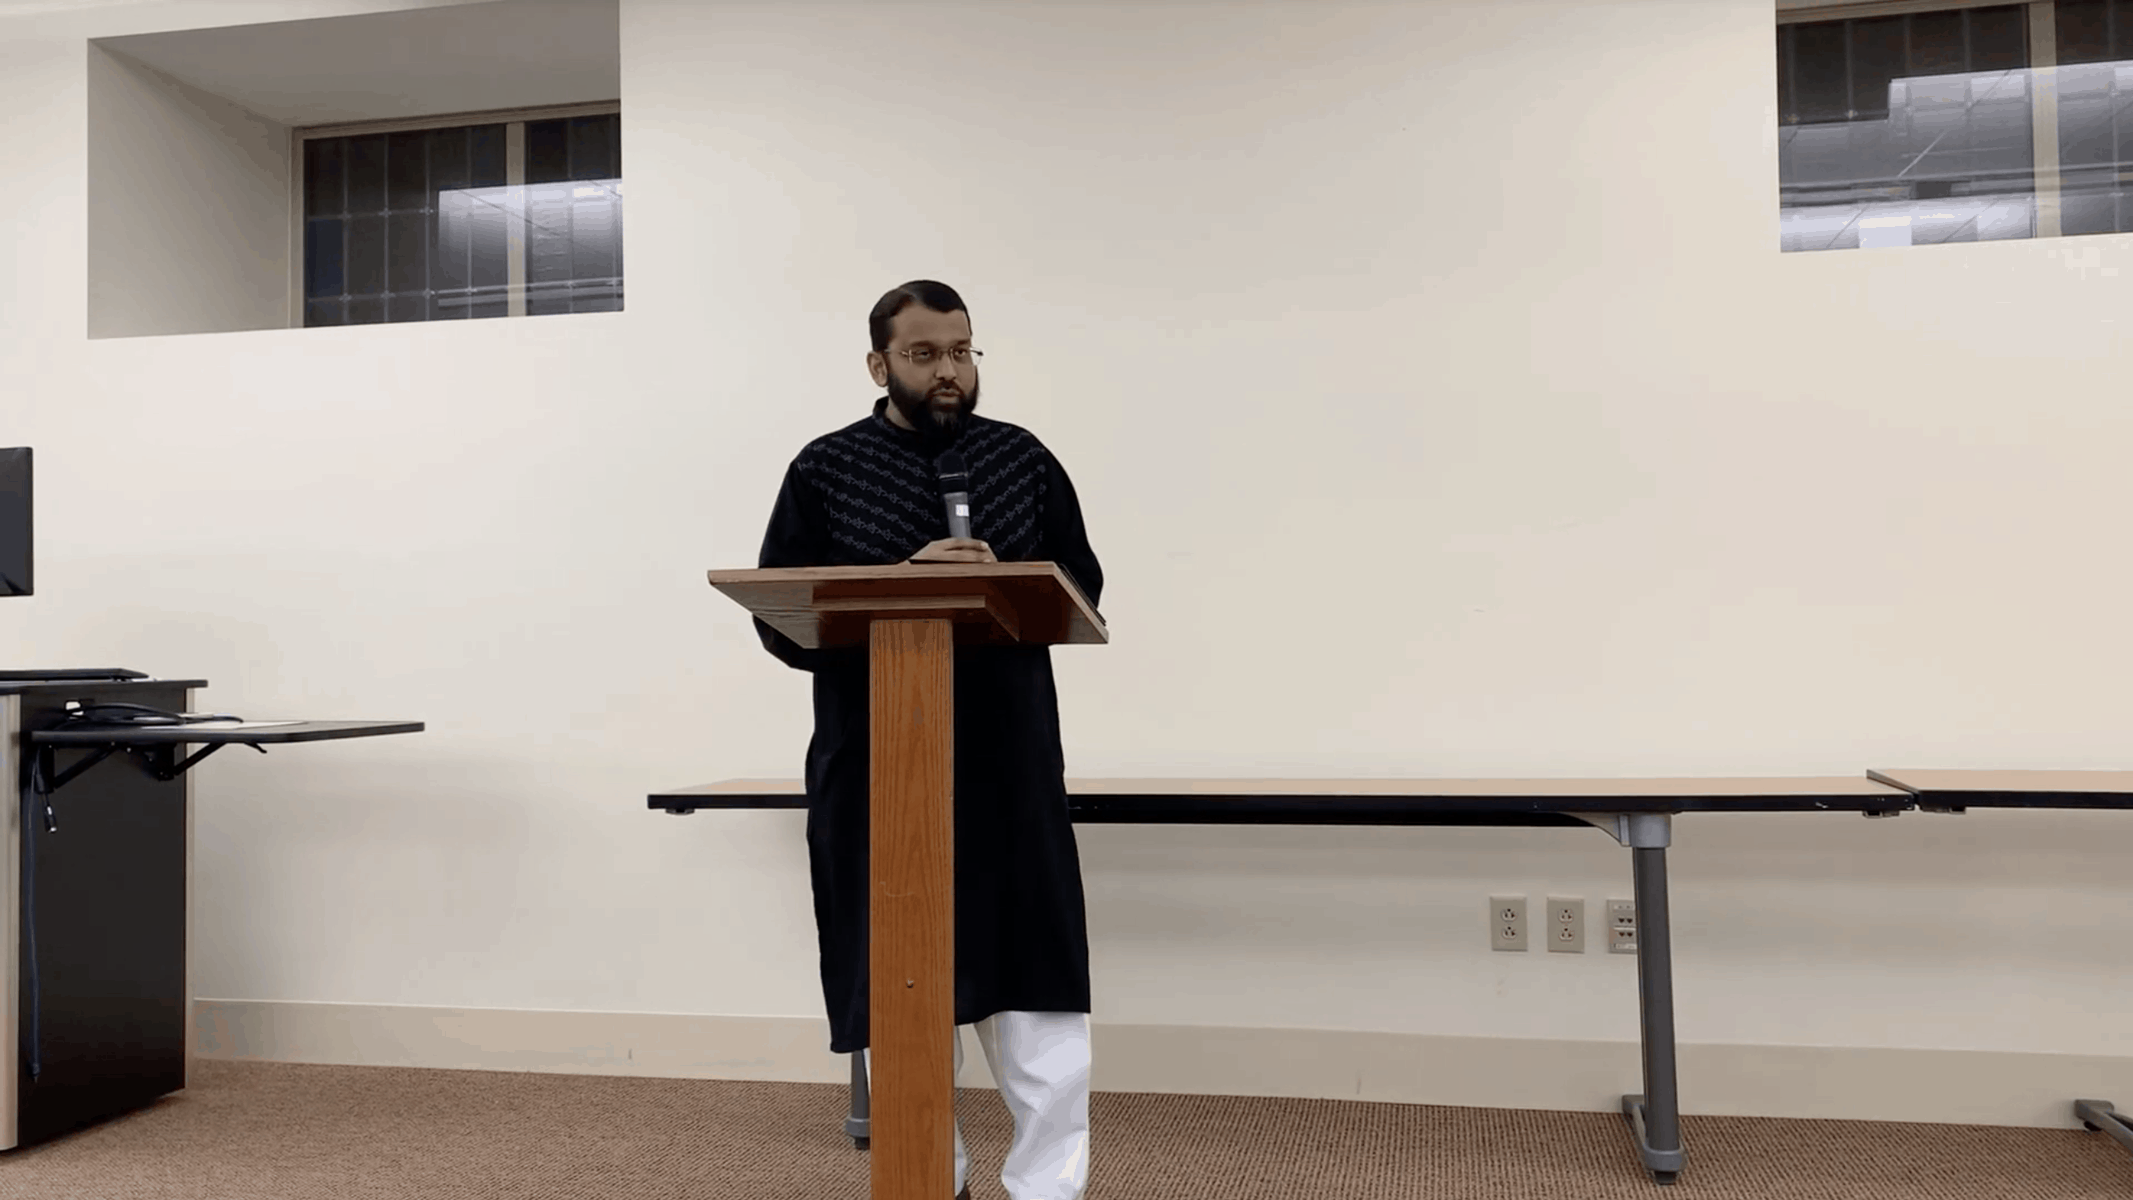 Yasir Qadhi – Politicizing Tragedy? A Muslim Academic's Response to The New Zealand Massacre